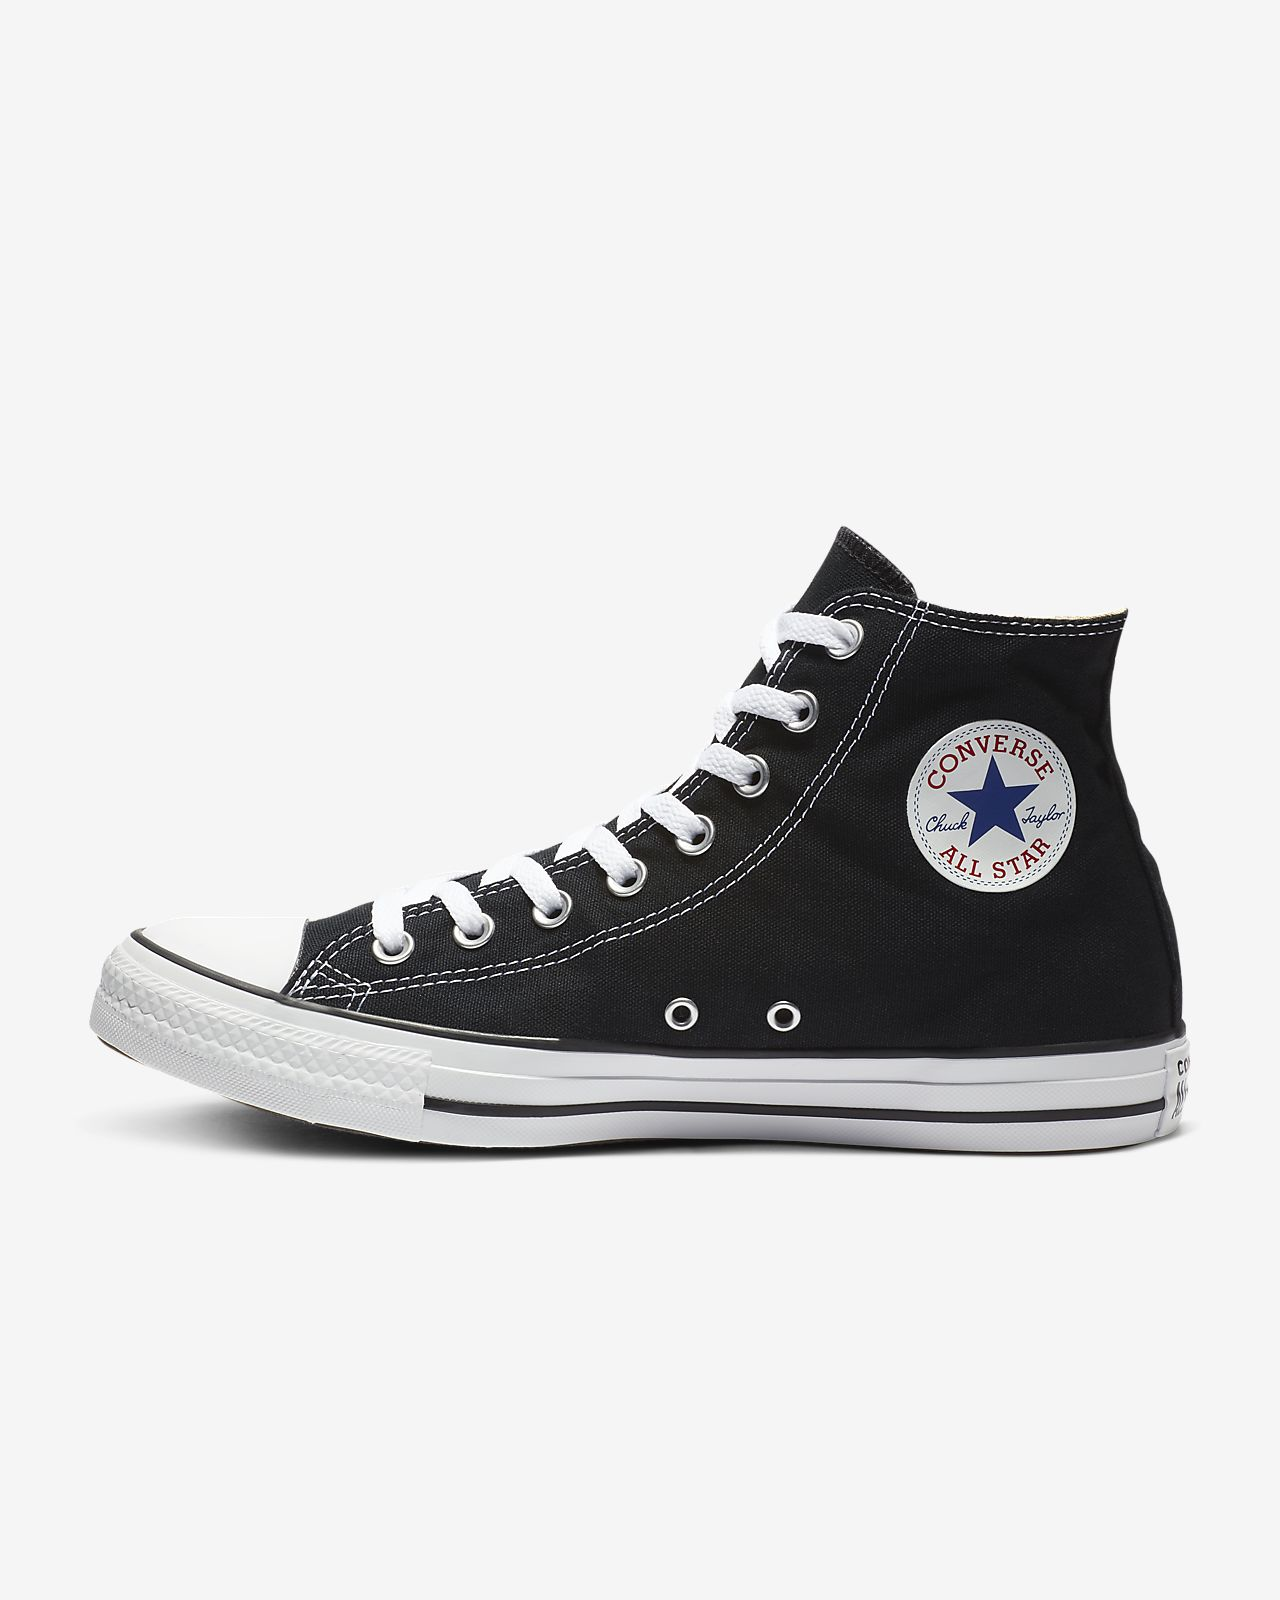 e99005c1381a Converse Chuck Taylor All Star High Top Unisex Shoe. Nike.com